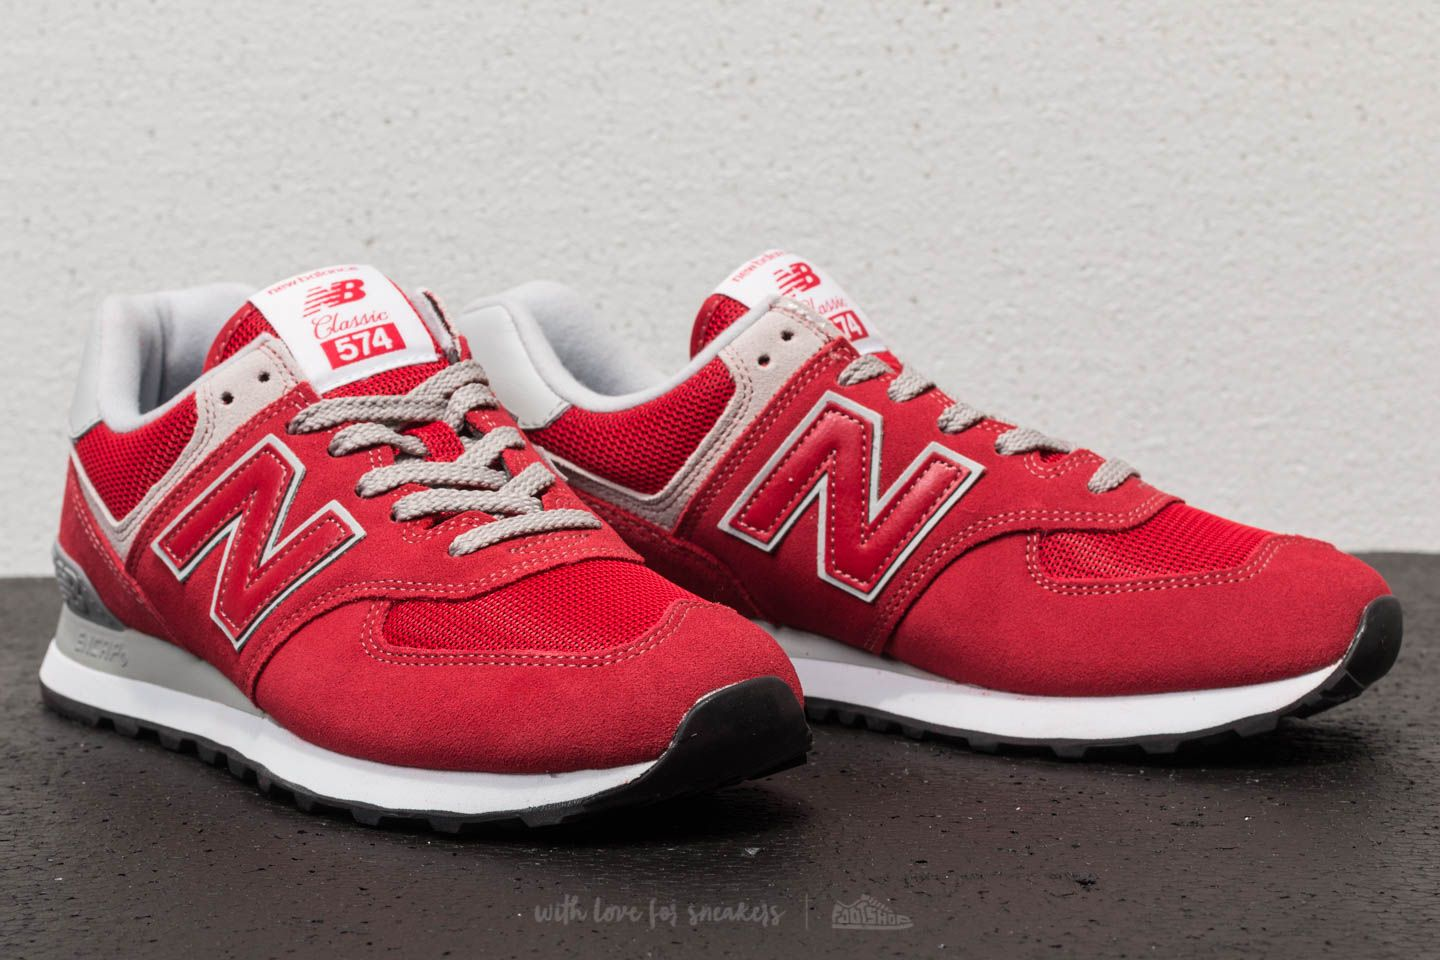 reputable site 4f618 56d09 New Balance 574 Team Red | Footshop